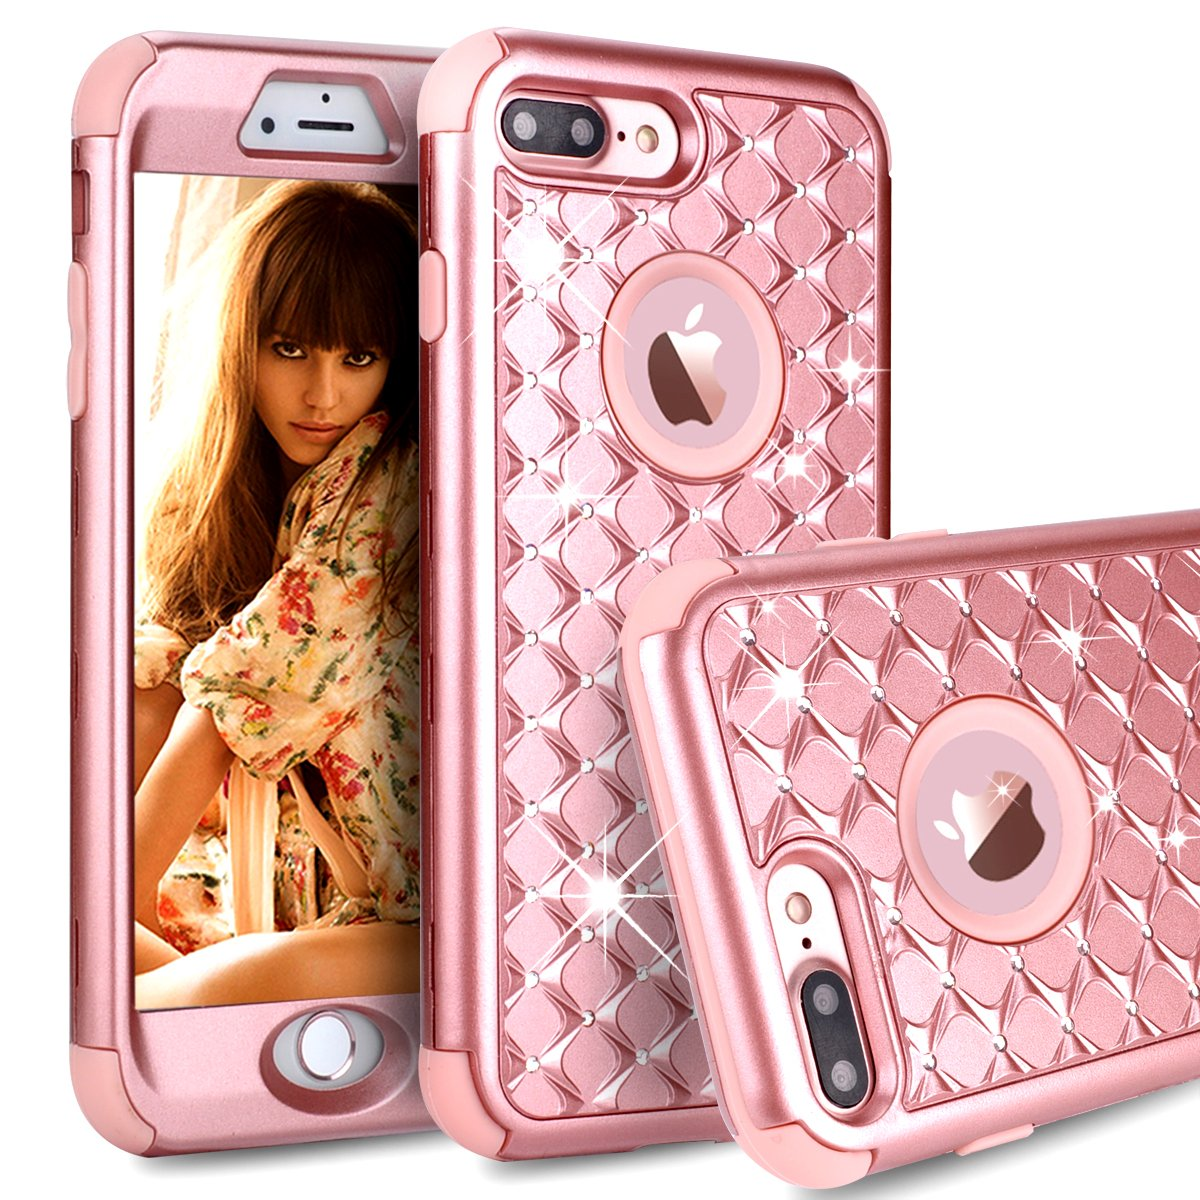 iPhone 7 Plus Case,iPhone 8 Plus Case,Power J Three Layer Heavy Duty Shockproof High Impact Resistant Hybrid Protective Case for iPhone 7 Plus 5.5'',(Diamond Rose Gold)